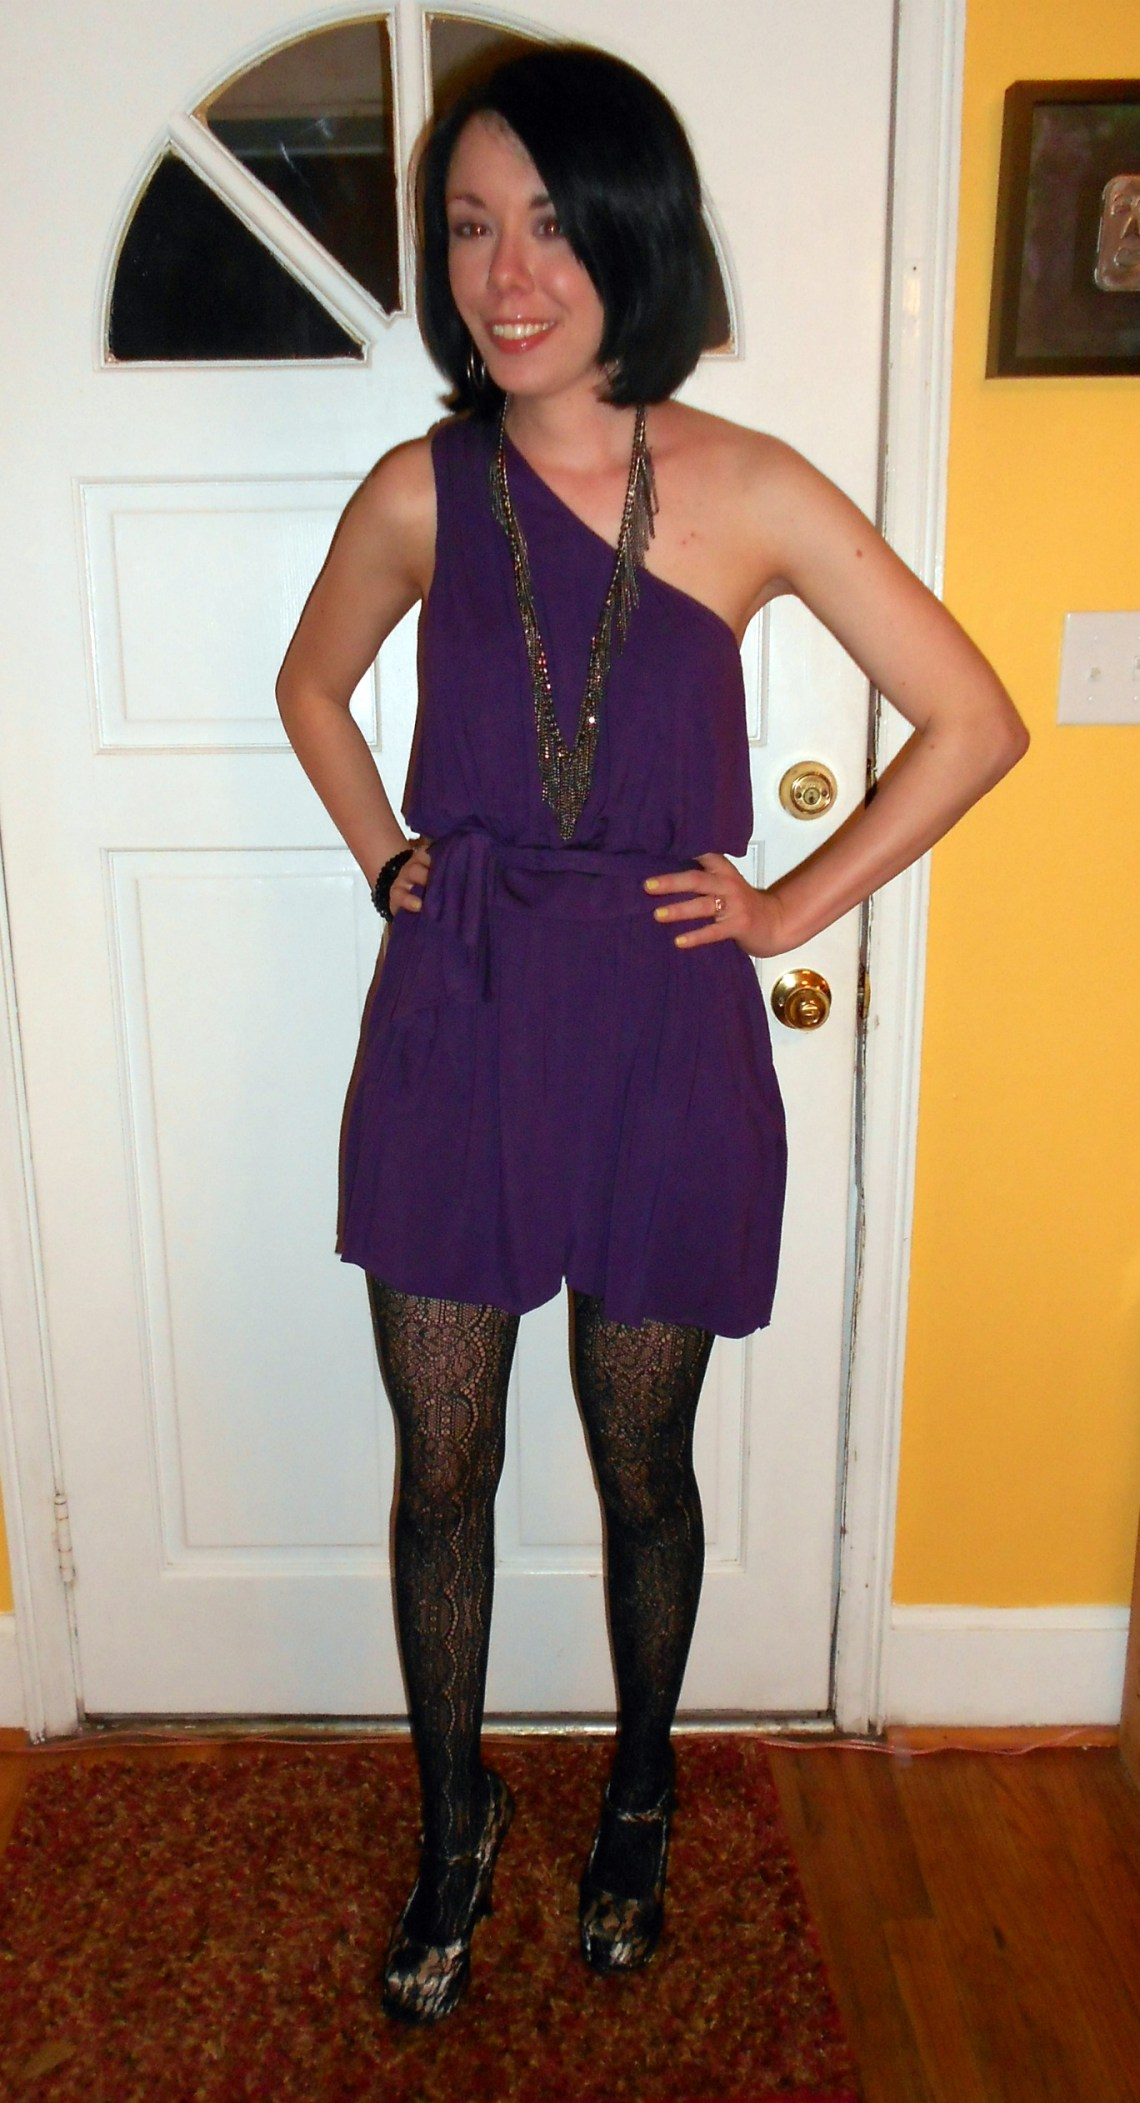 Day 219: Life of the Party Dress 1